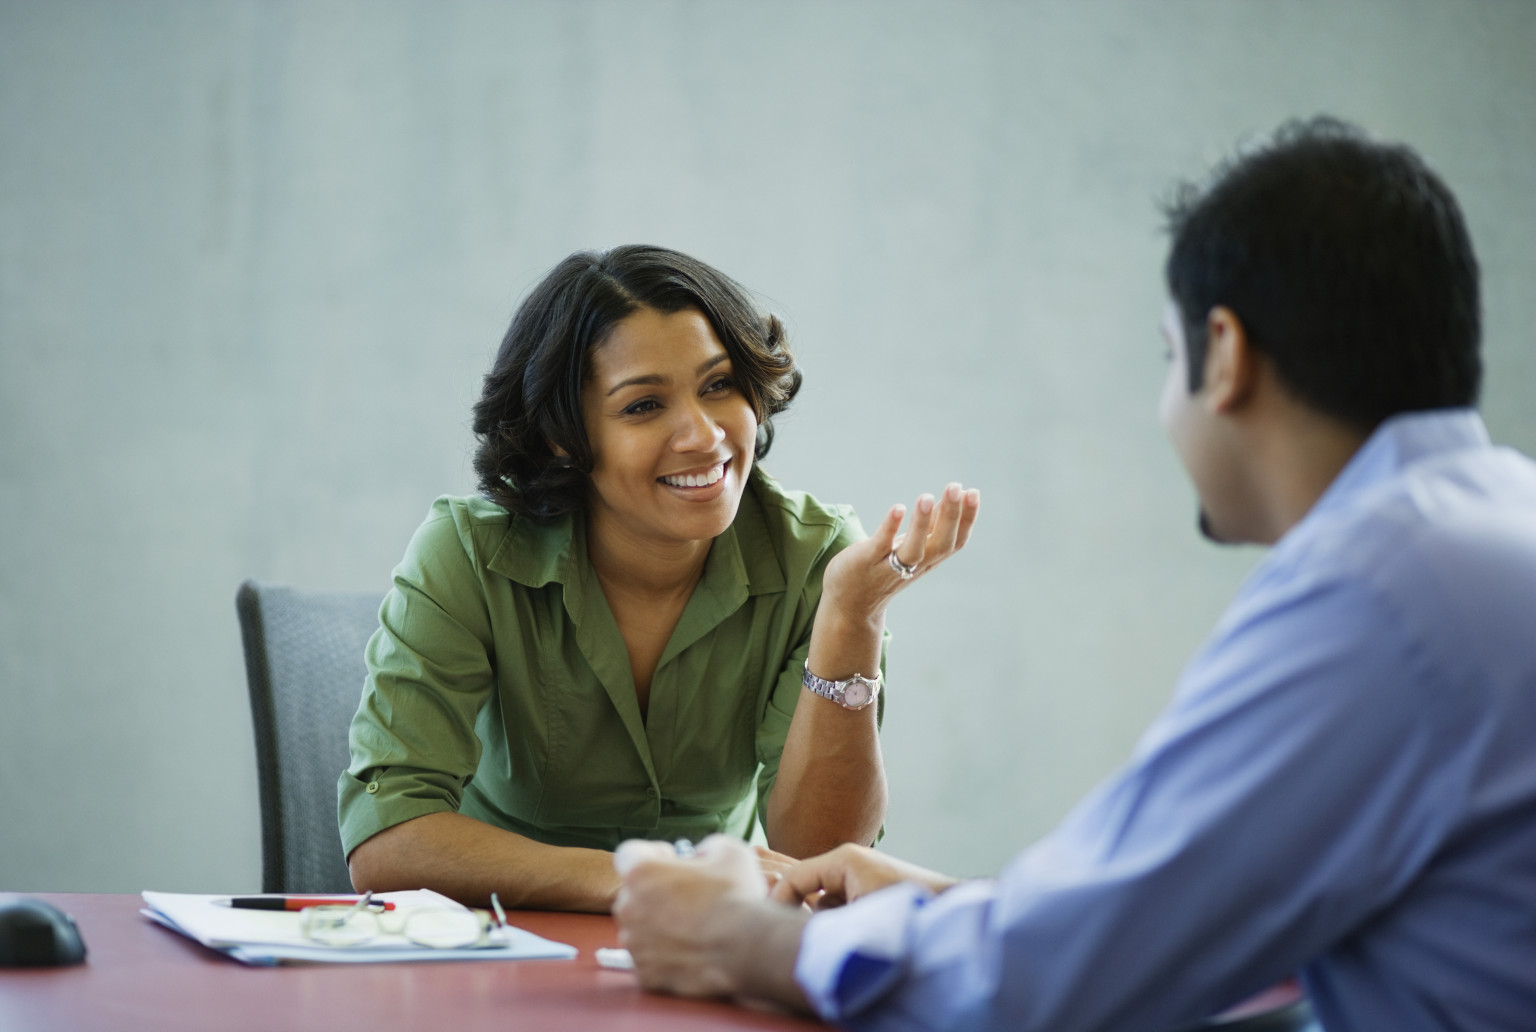 6 Ways To Respond Toist Microaggressions In Everyday